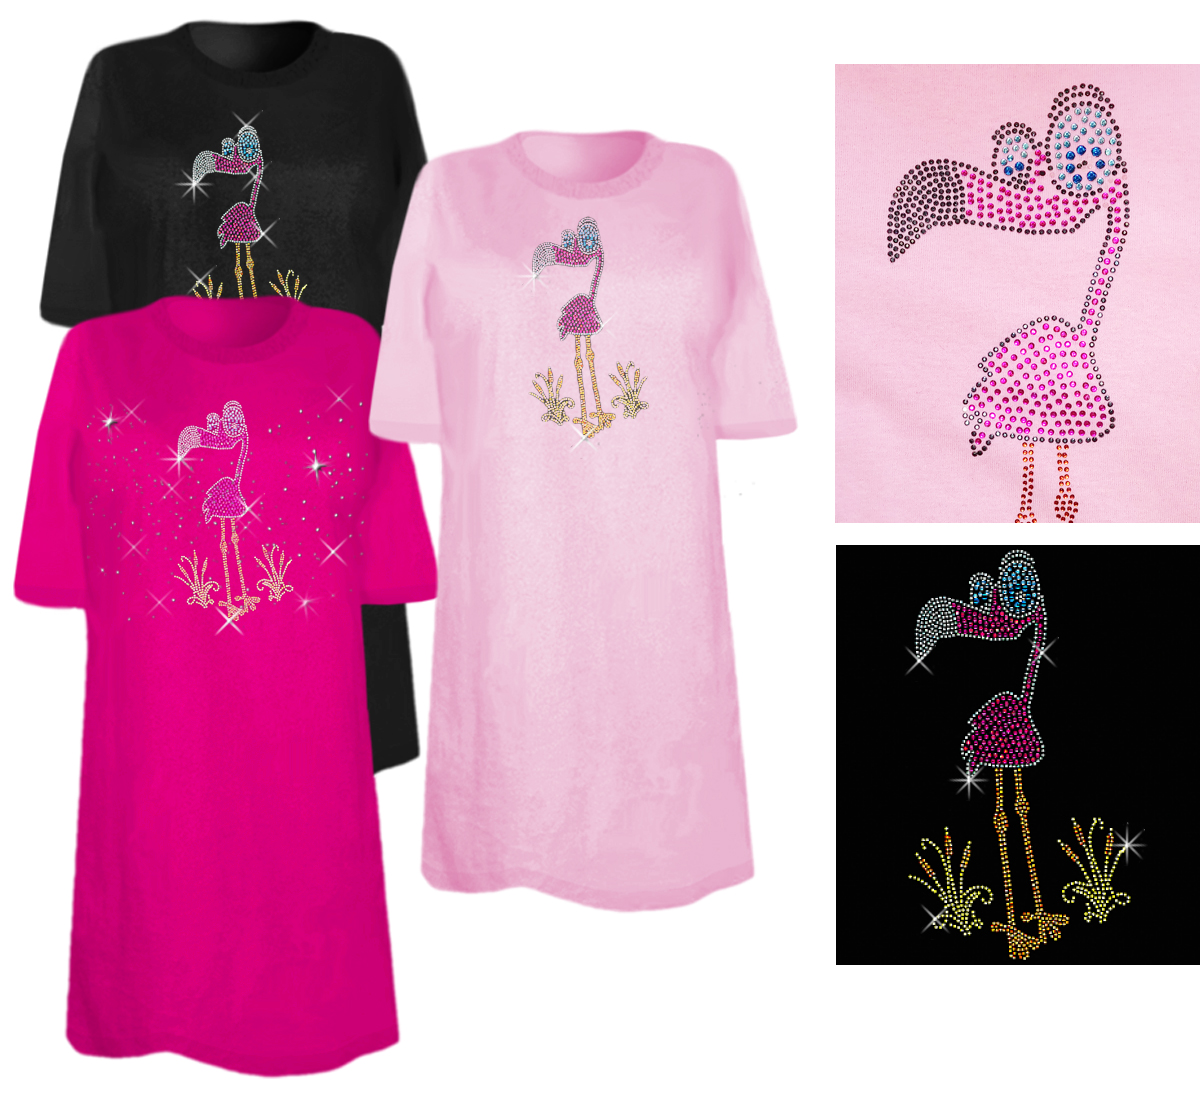 Sale Flamingo Rhinestone Studs Plus Size Supersize T